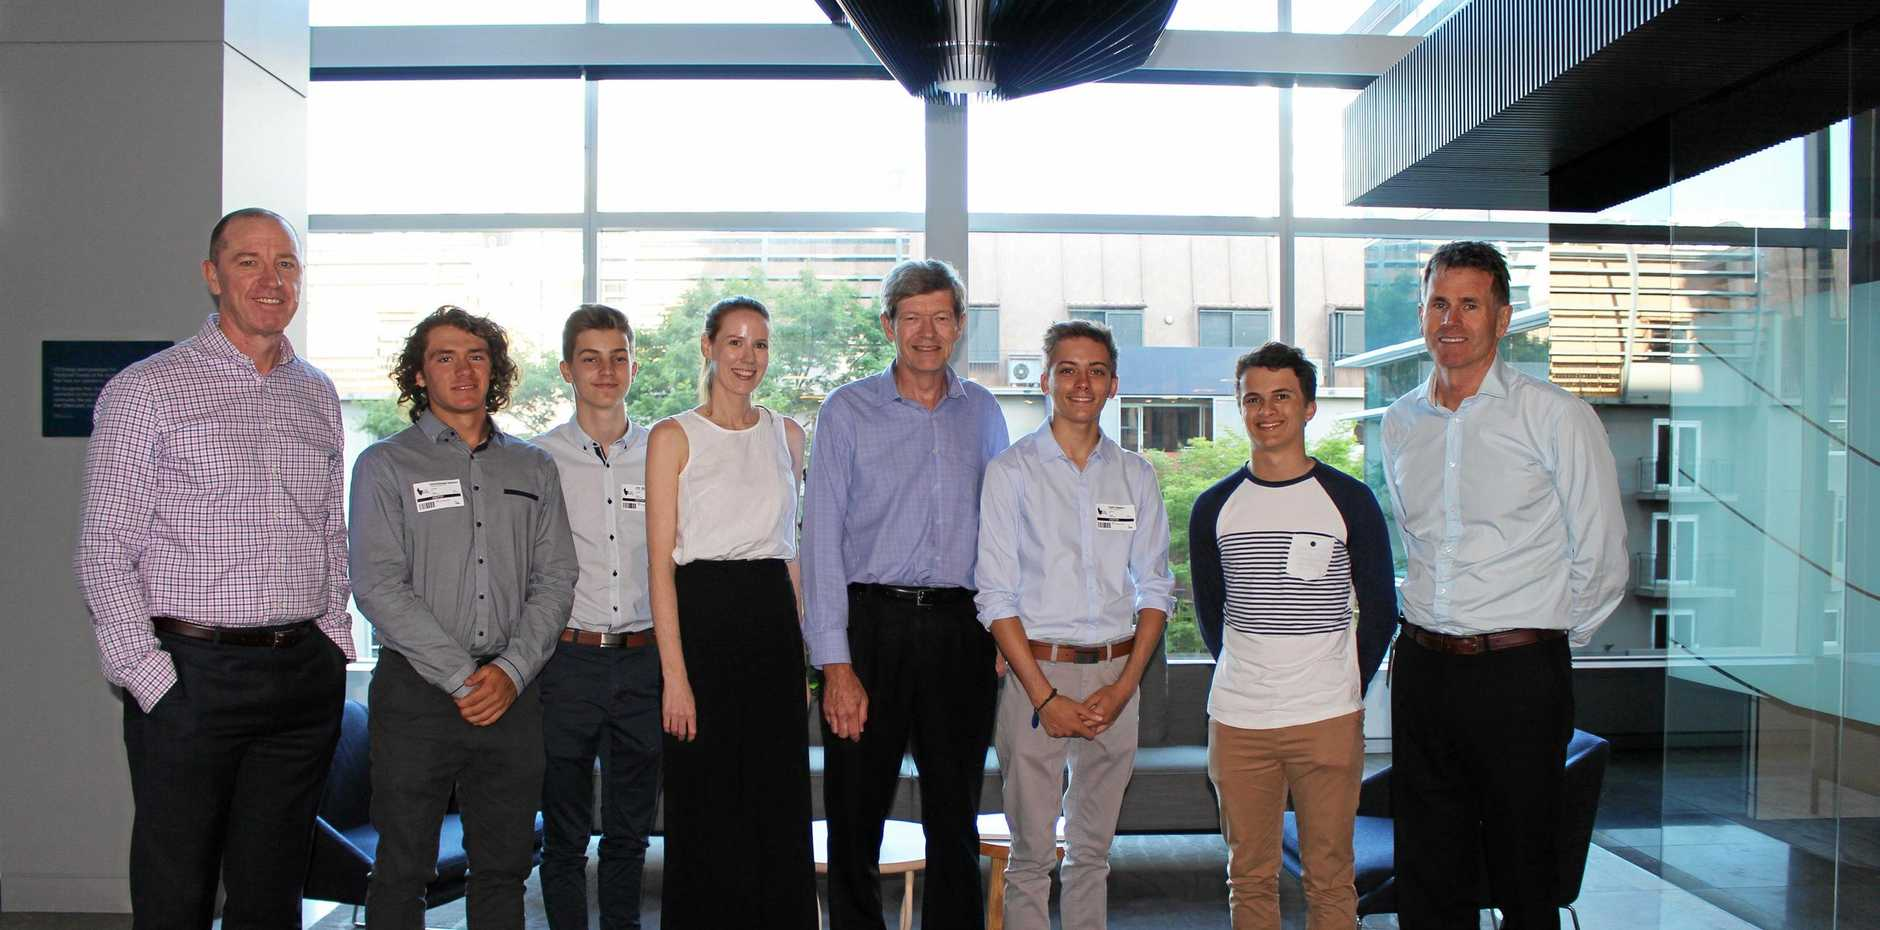 NEXT GENERATION: Bartholomew Dickman (second from left), Jack McDonald (third left), Justin Gleeson (third right) and Benjamin Smythe (second right) with CS Energy CEO Andrew Bills (far right), executive general manager Andrew Varvari (far left), principal engineer David Bell (centre) and HR administrator Jillian Evans.